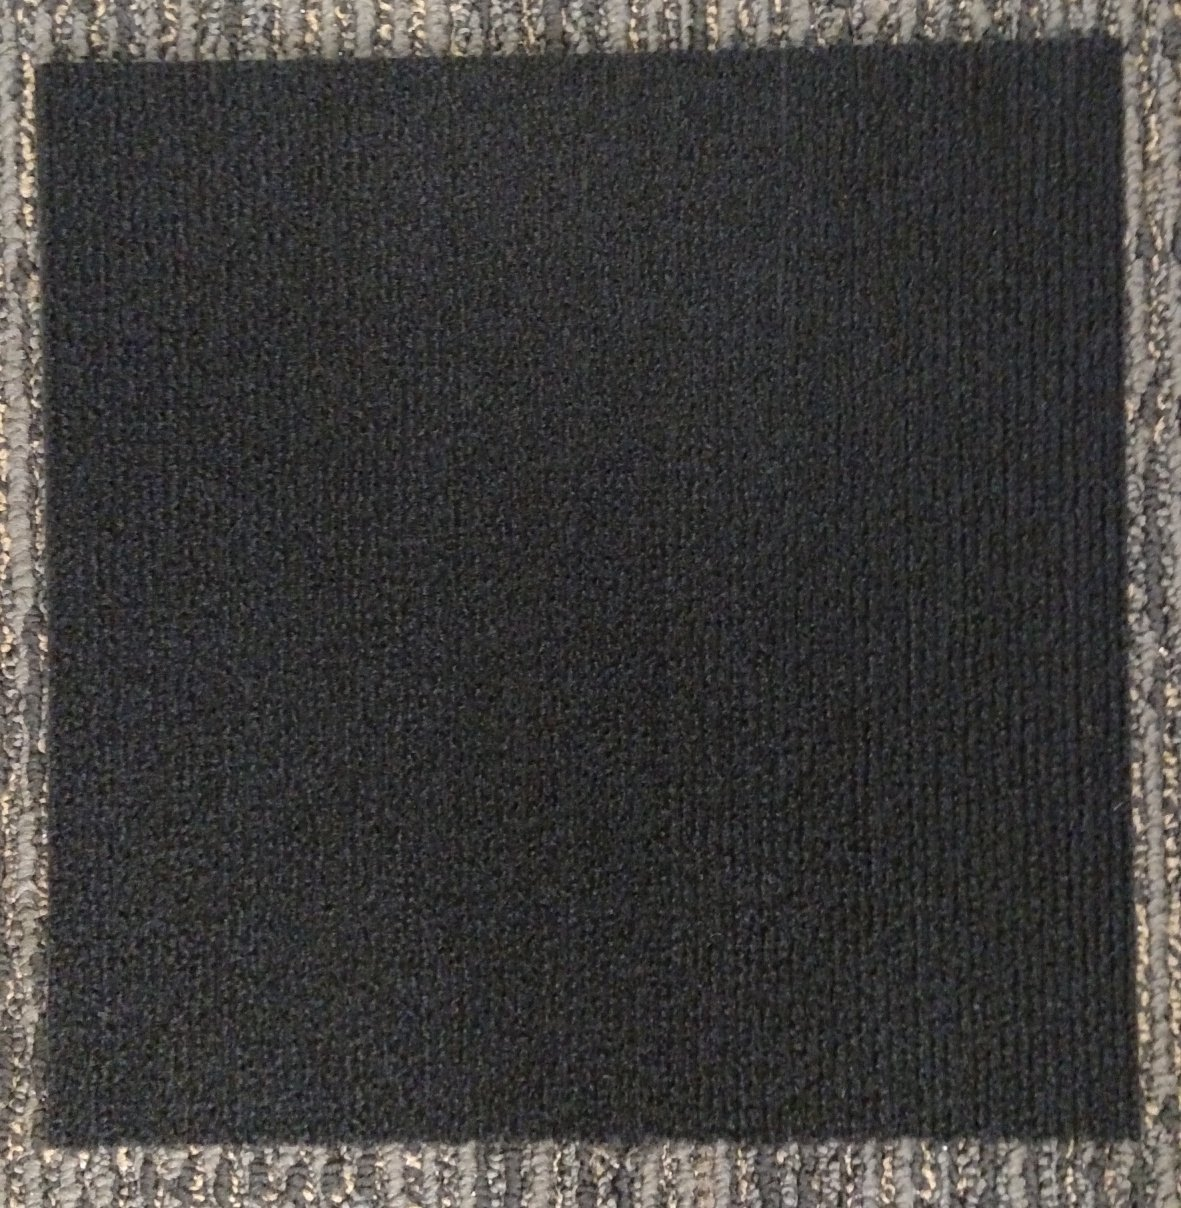 Carpet Tiles Peel and Stick Black 12 Inch, 36 Square Feet